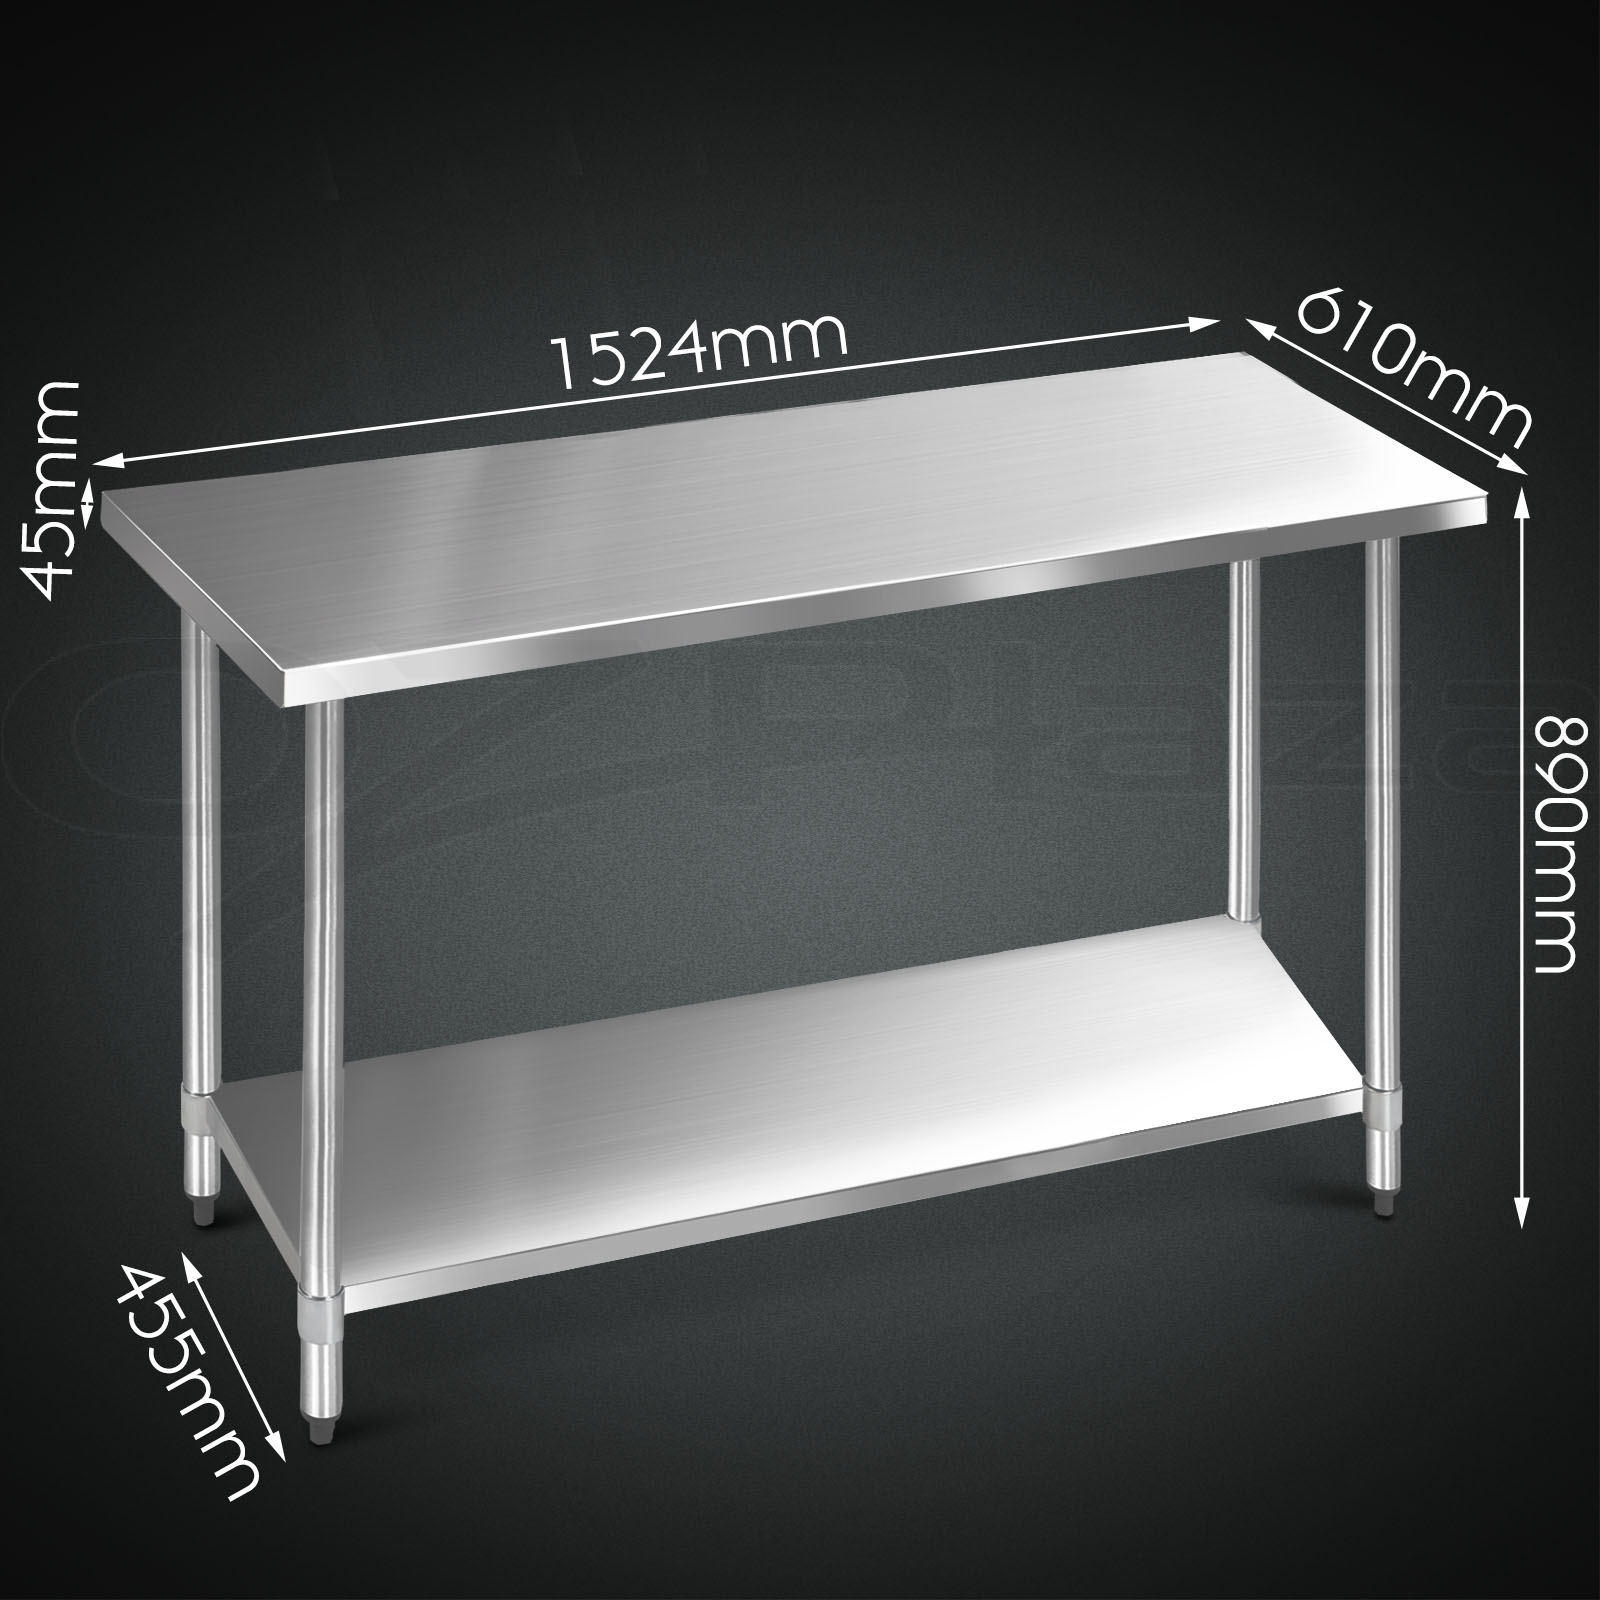 304 430 mercial stainless steel kitchen work bench top food